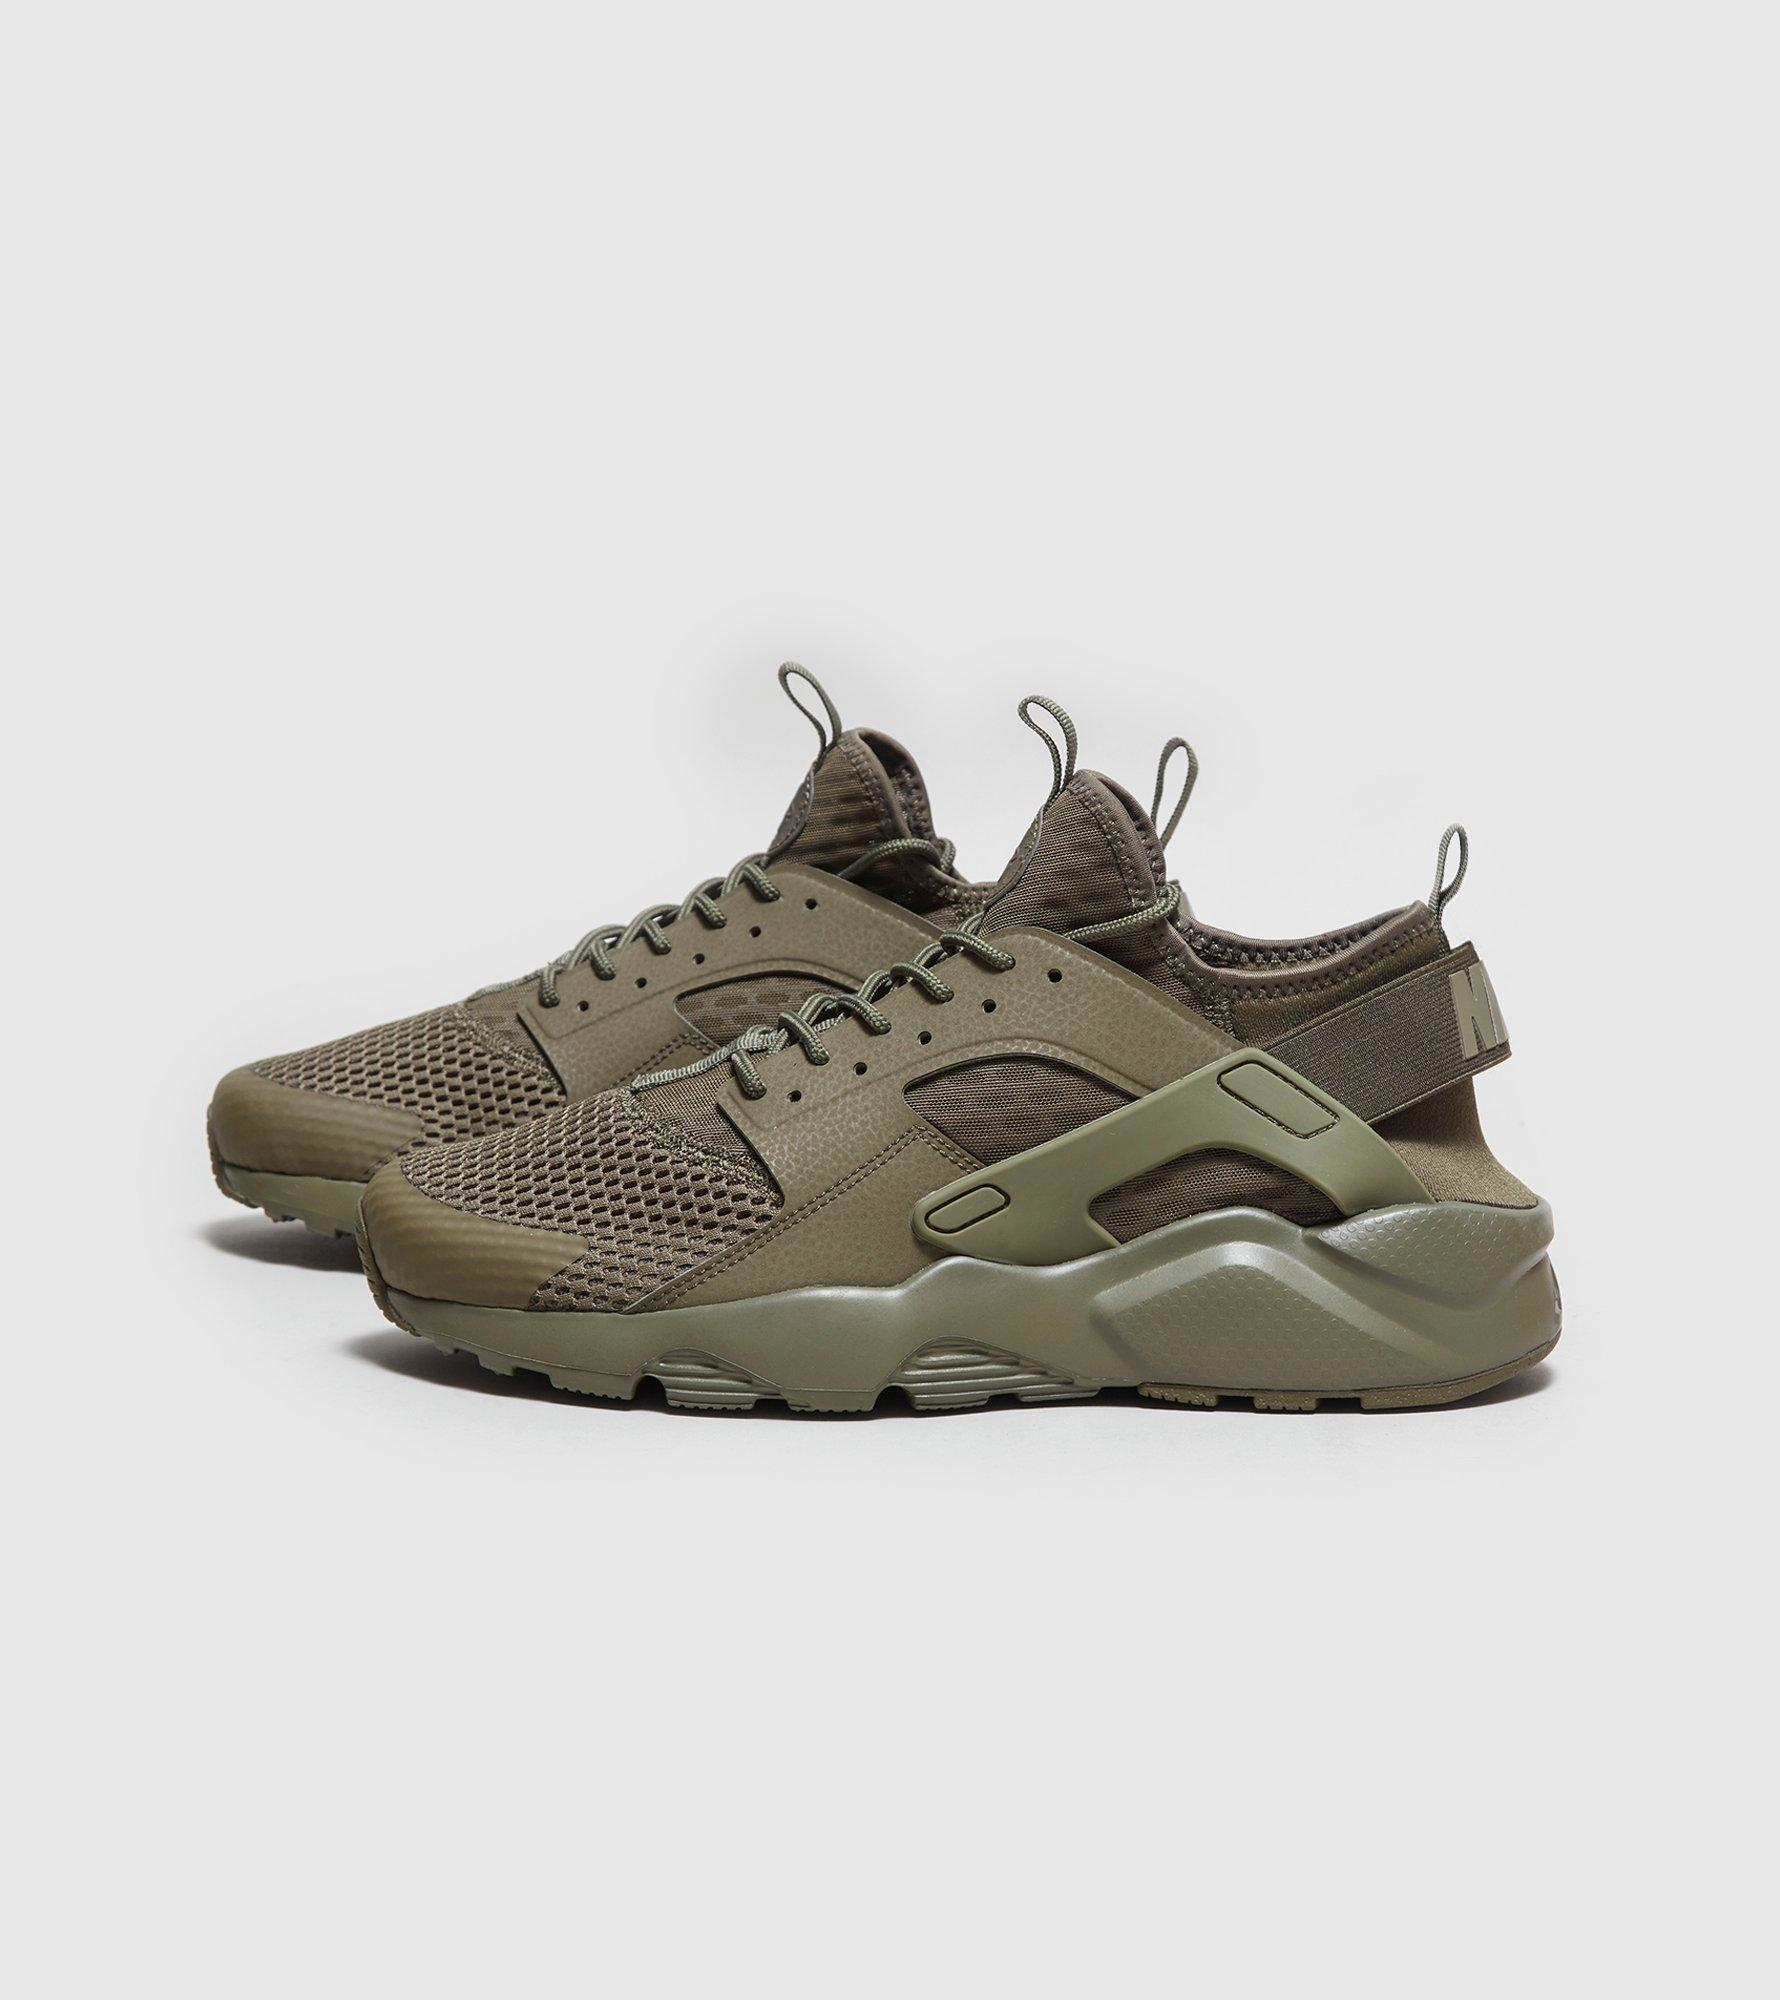 Nike Huarache Sale Uk Mens